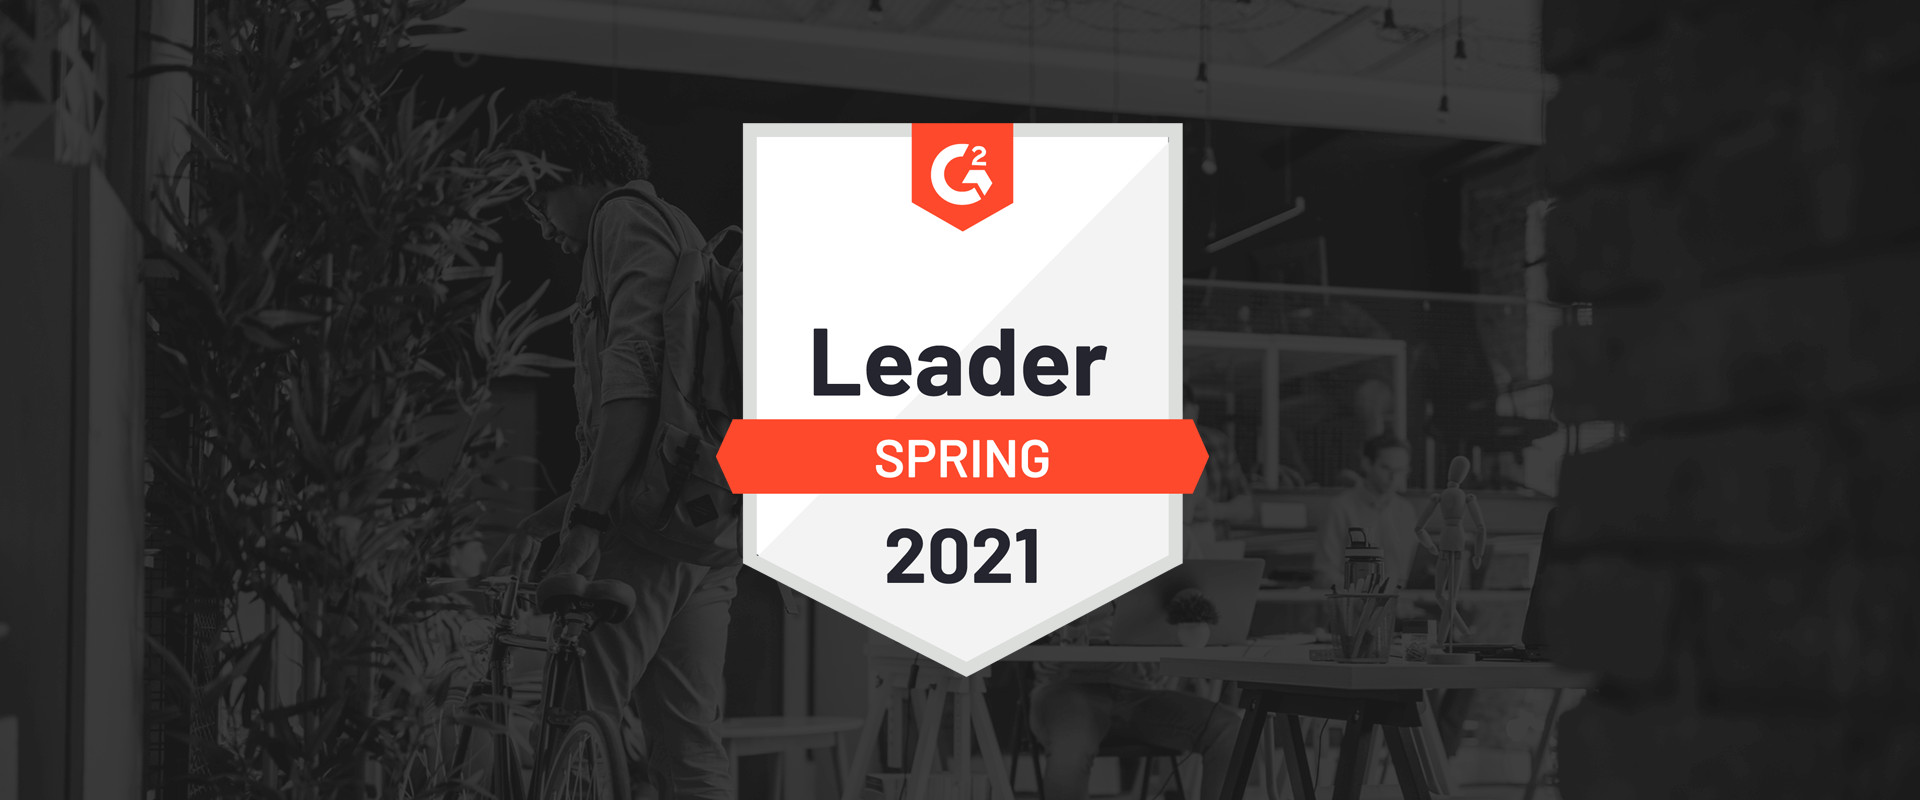 Kentico Kontent Remains a Leader in G2 Grid for Headless CMS